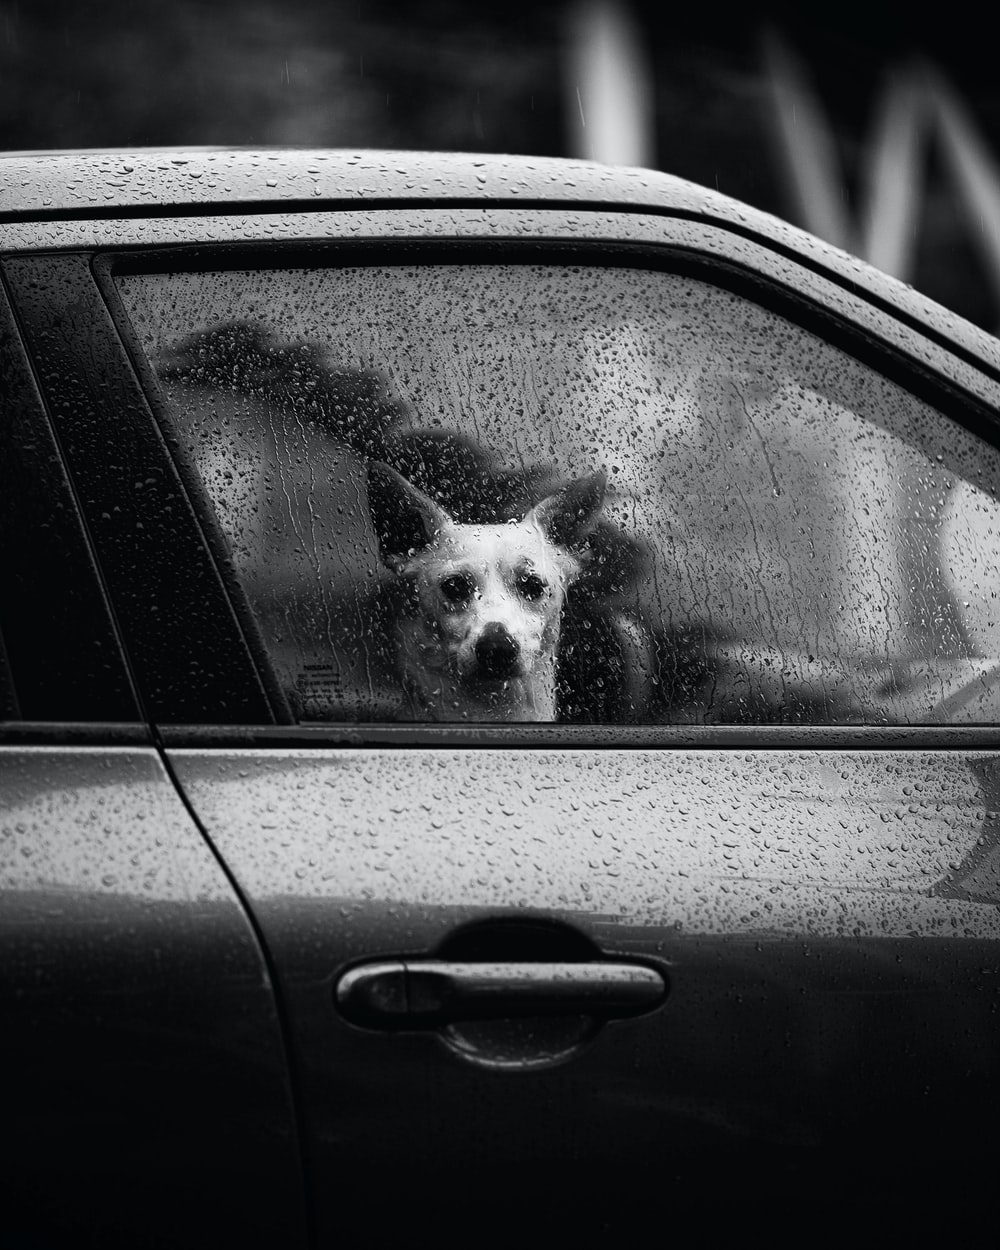 grayscale photo of dog inside car